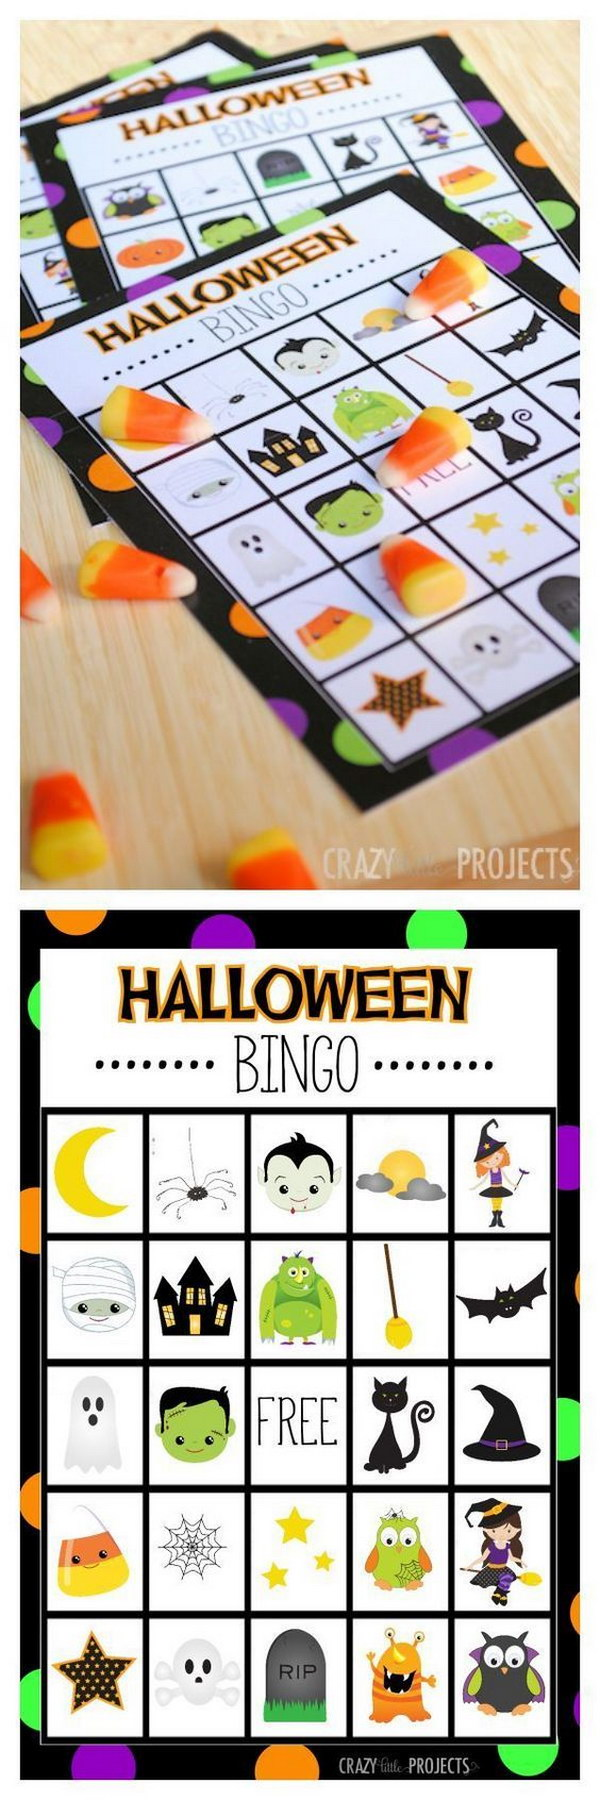 Free Printable Halloween Bingo game.